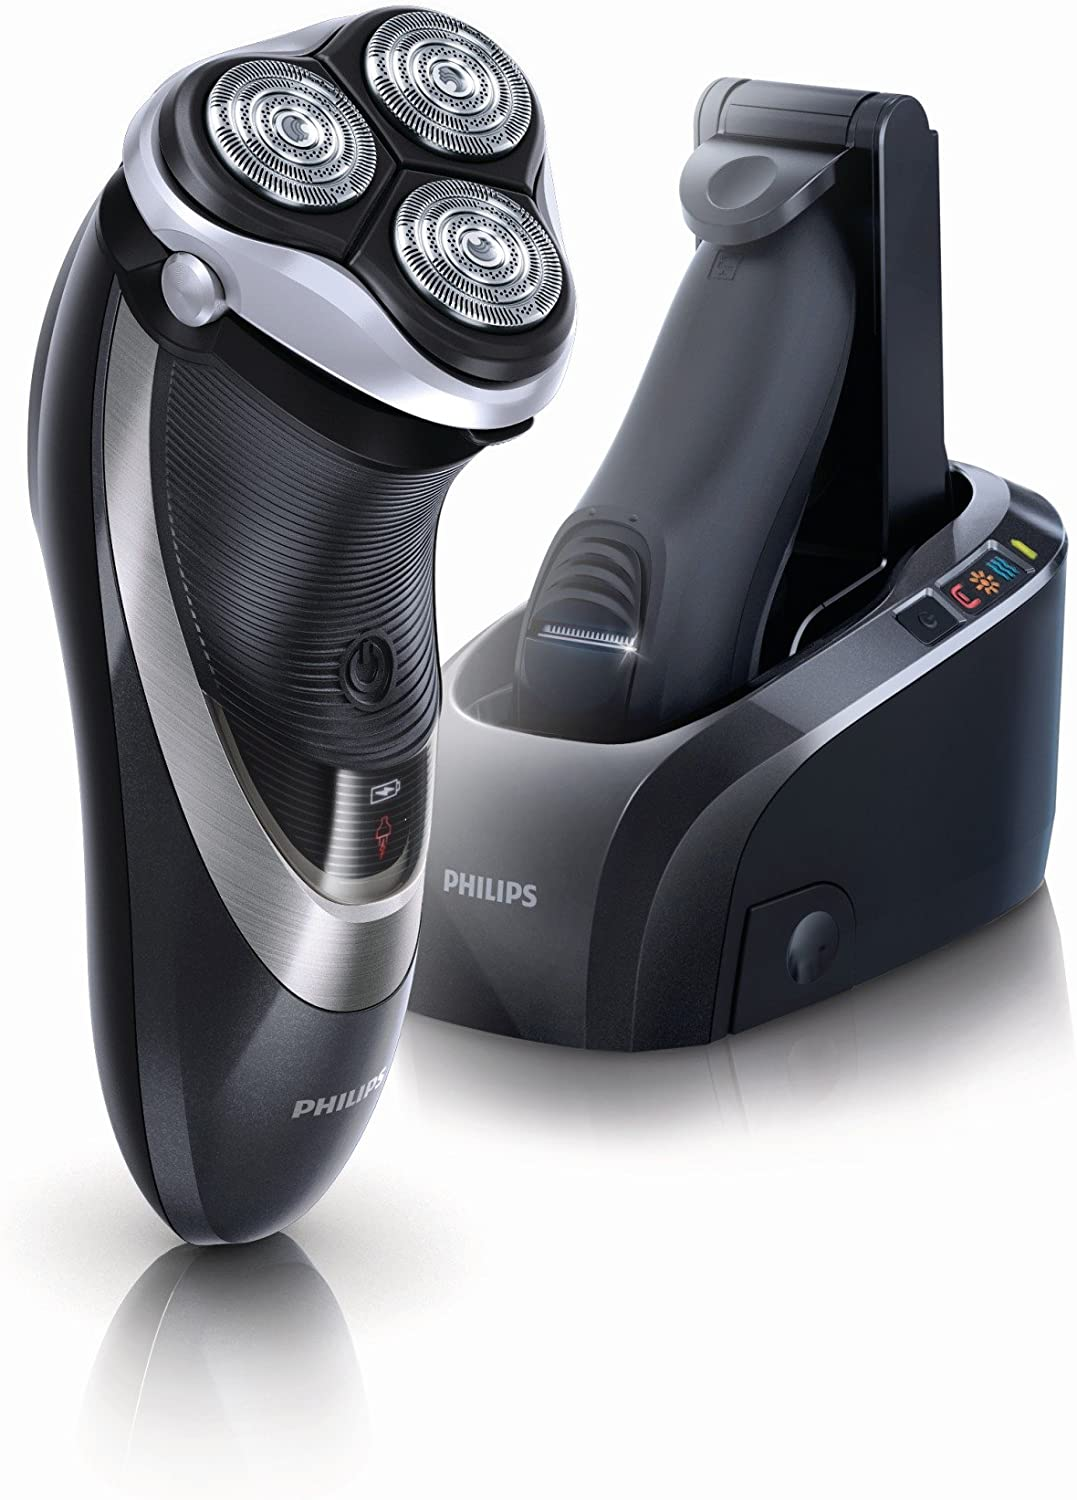 Philips - Afeitadora Pt92021, Recargable, Cuchillas, Cortapatillas ...